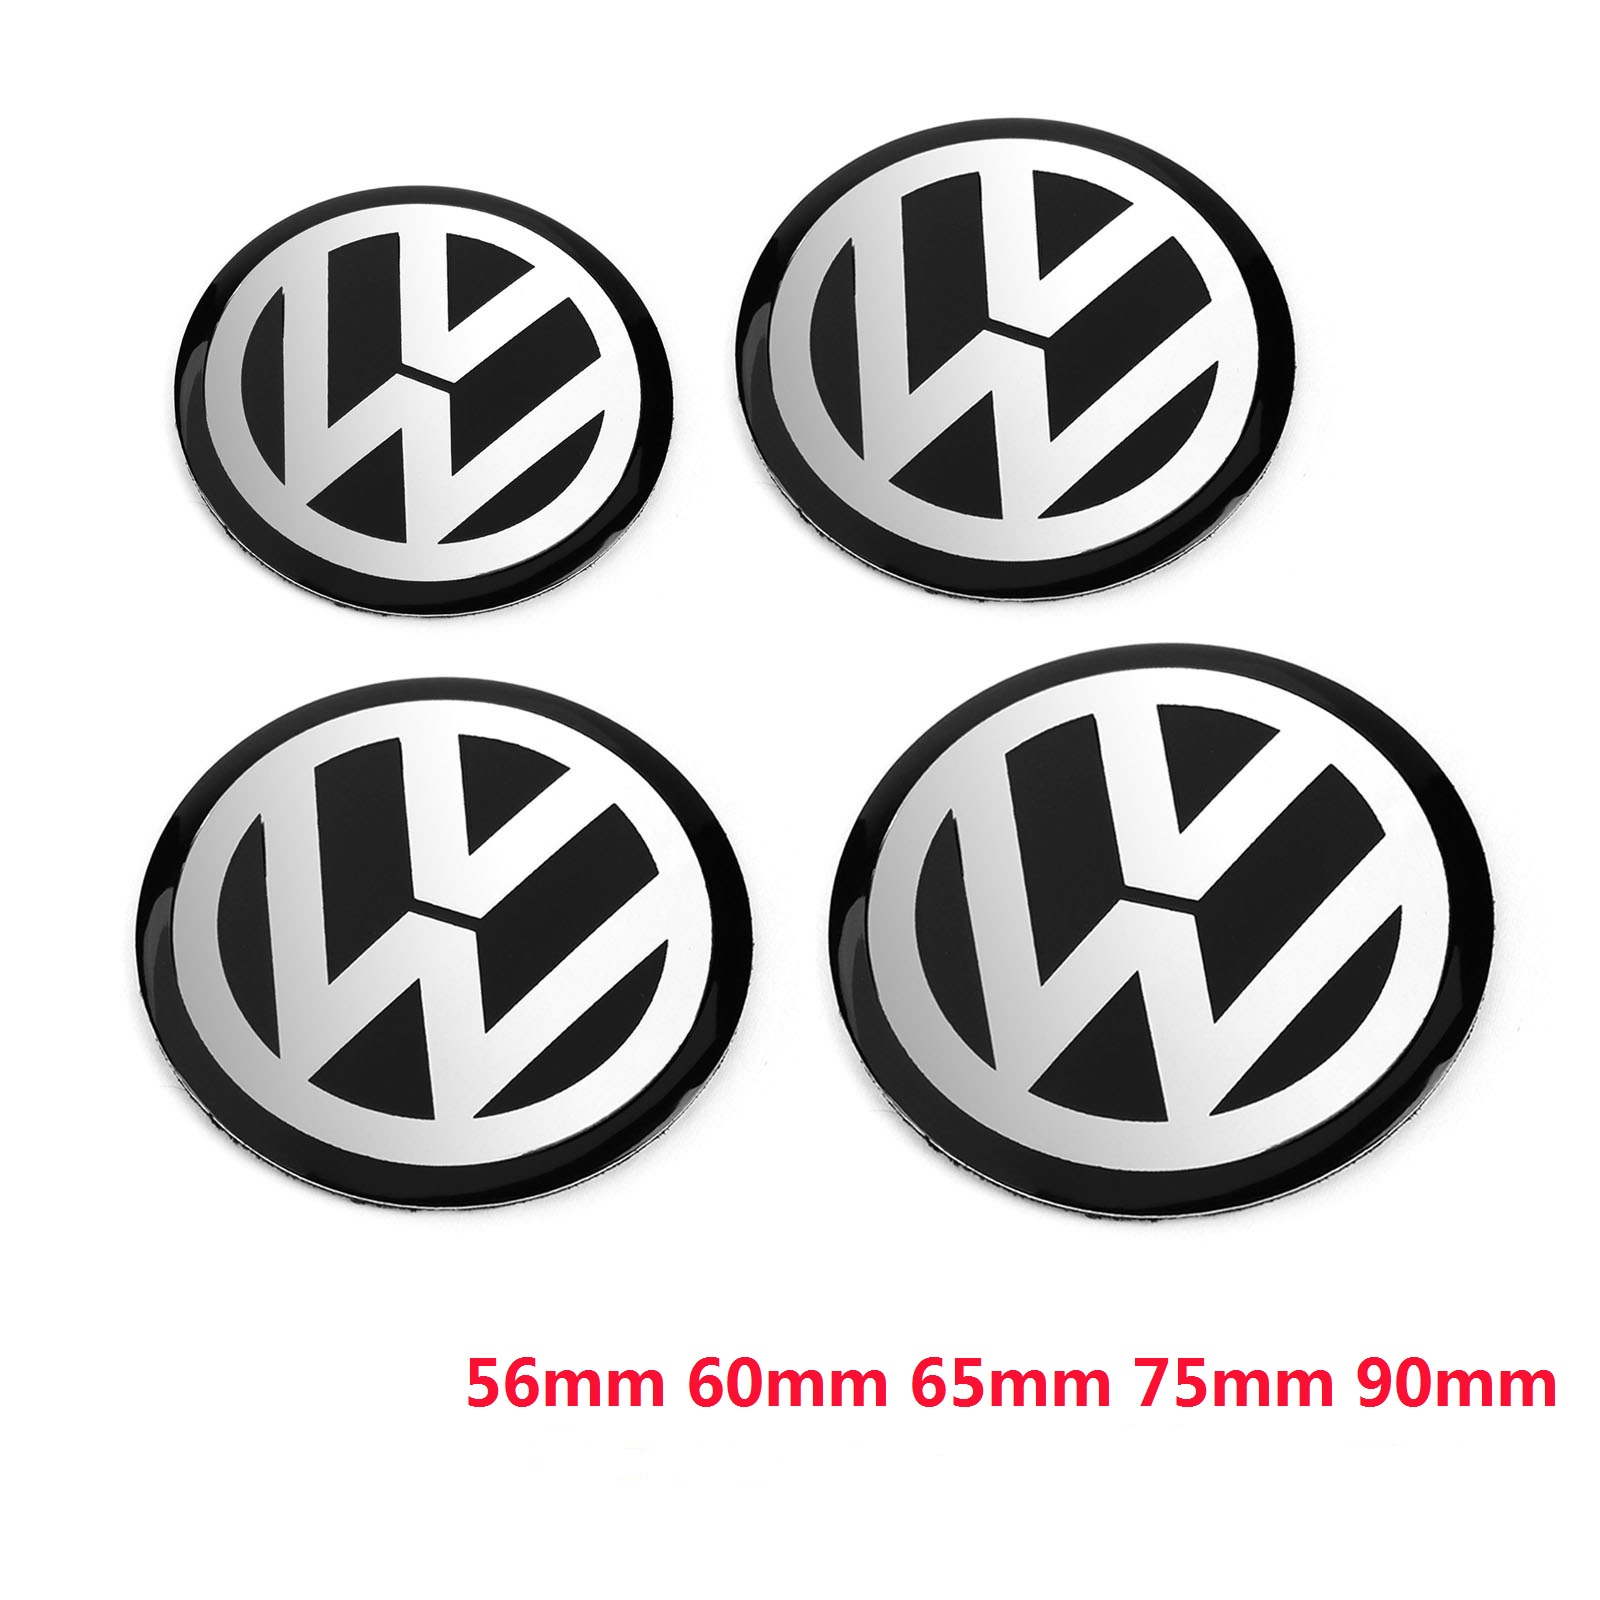 4pcs 56mm 60mm 65mm 75mm 90mm Black Car Wheel Center Hub <font><b>Cap</b></font> Badge Logo Emblem Decal Wheel <font><b>Sticker</b></font> Styling For <font><b>VW</b></font> image